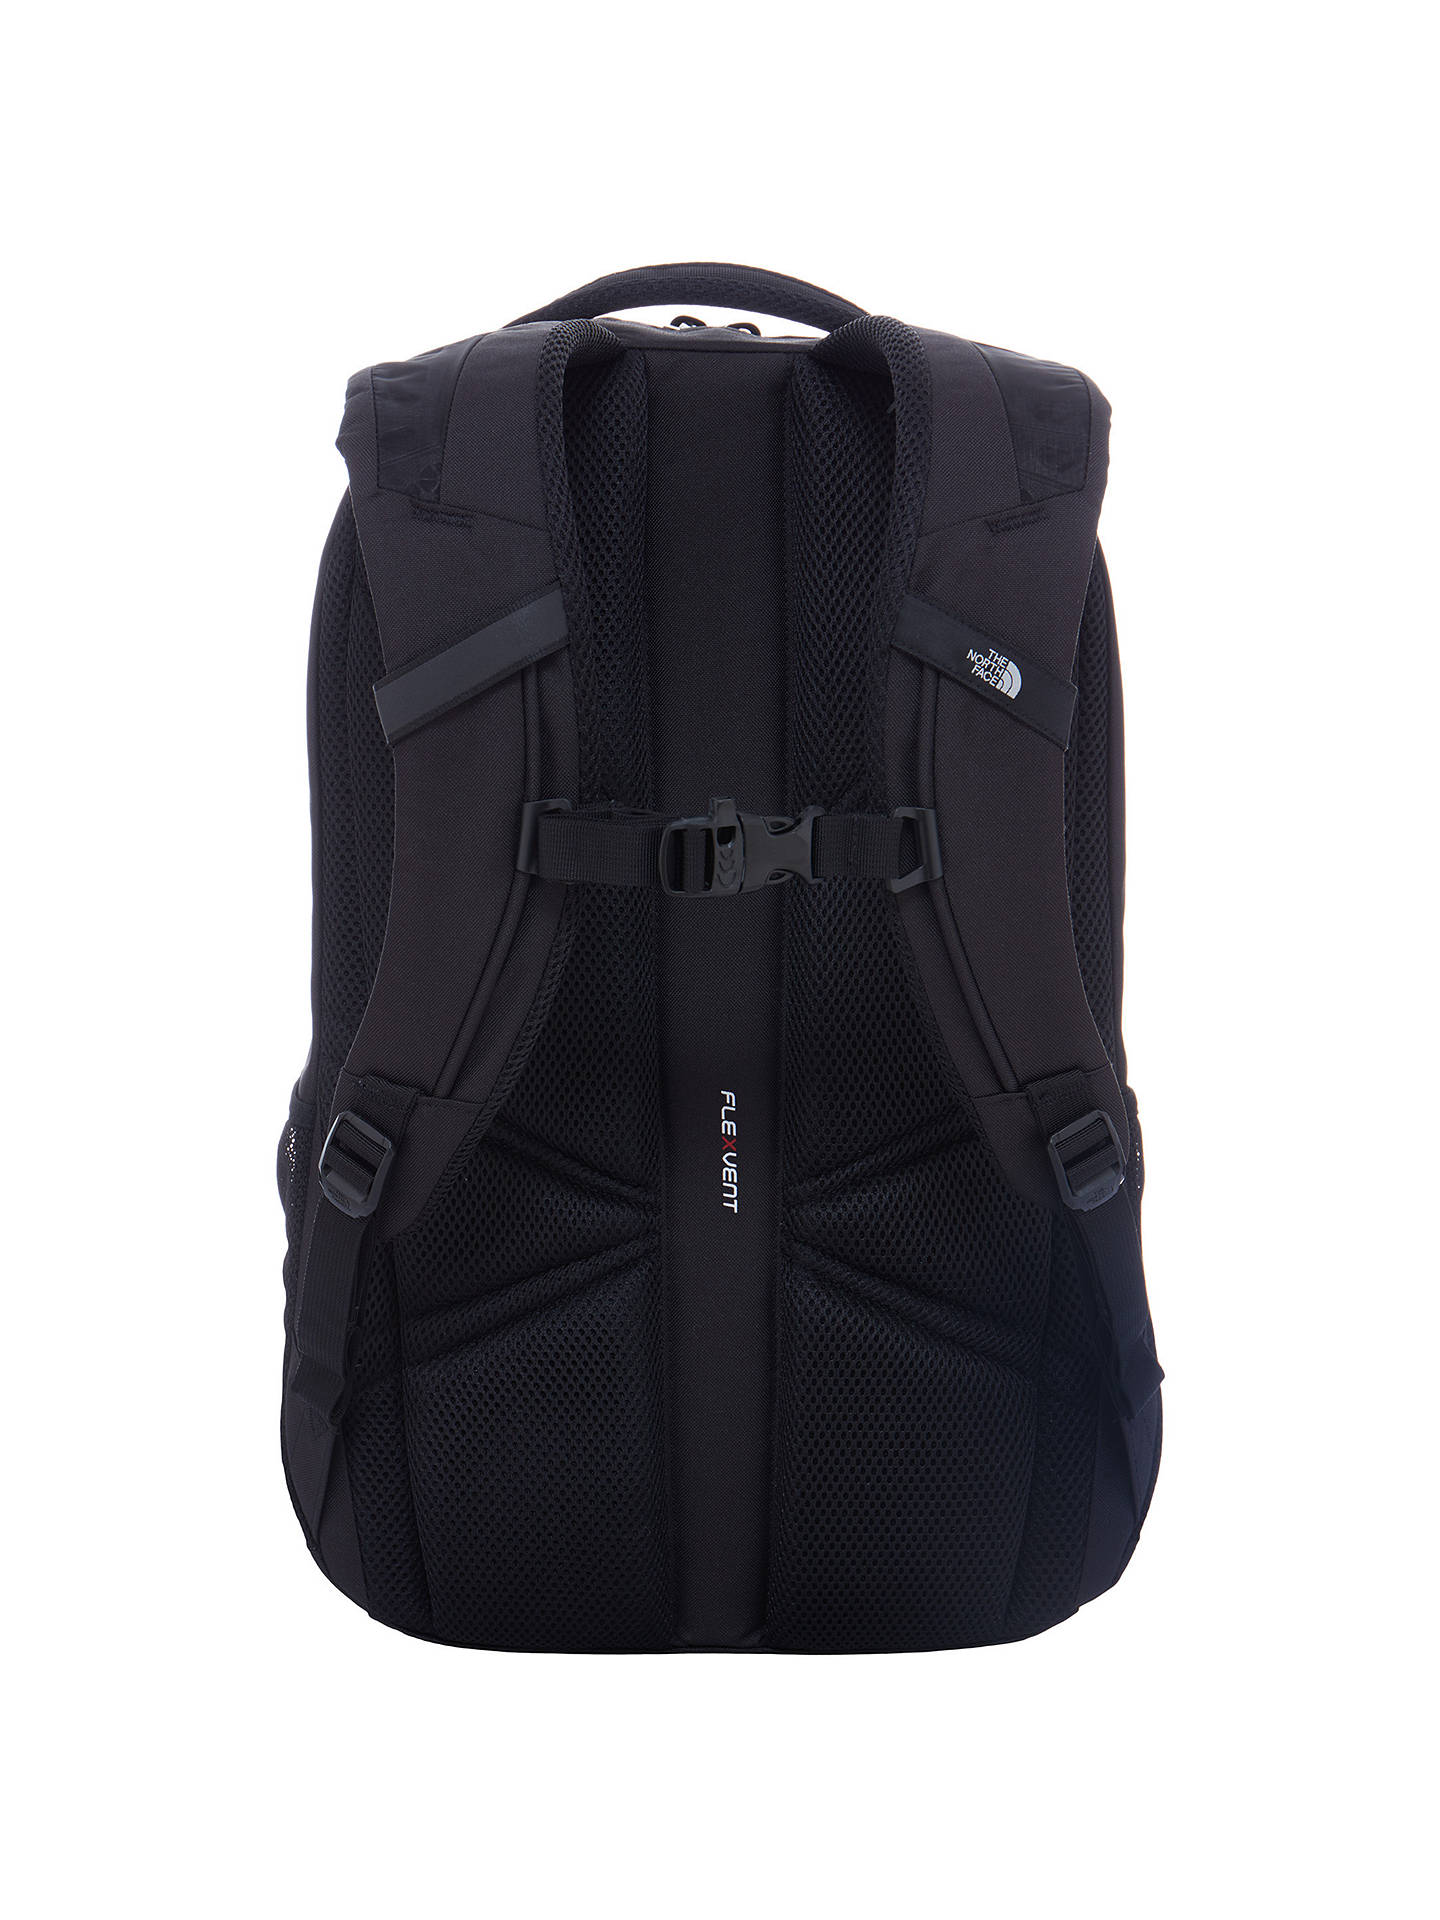 Buy The North Face Jester Backpack, Black Online at johnlewis.com